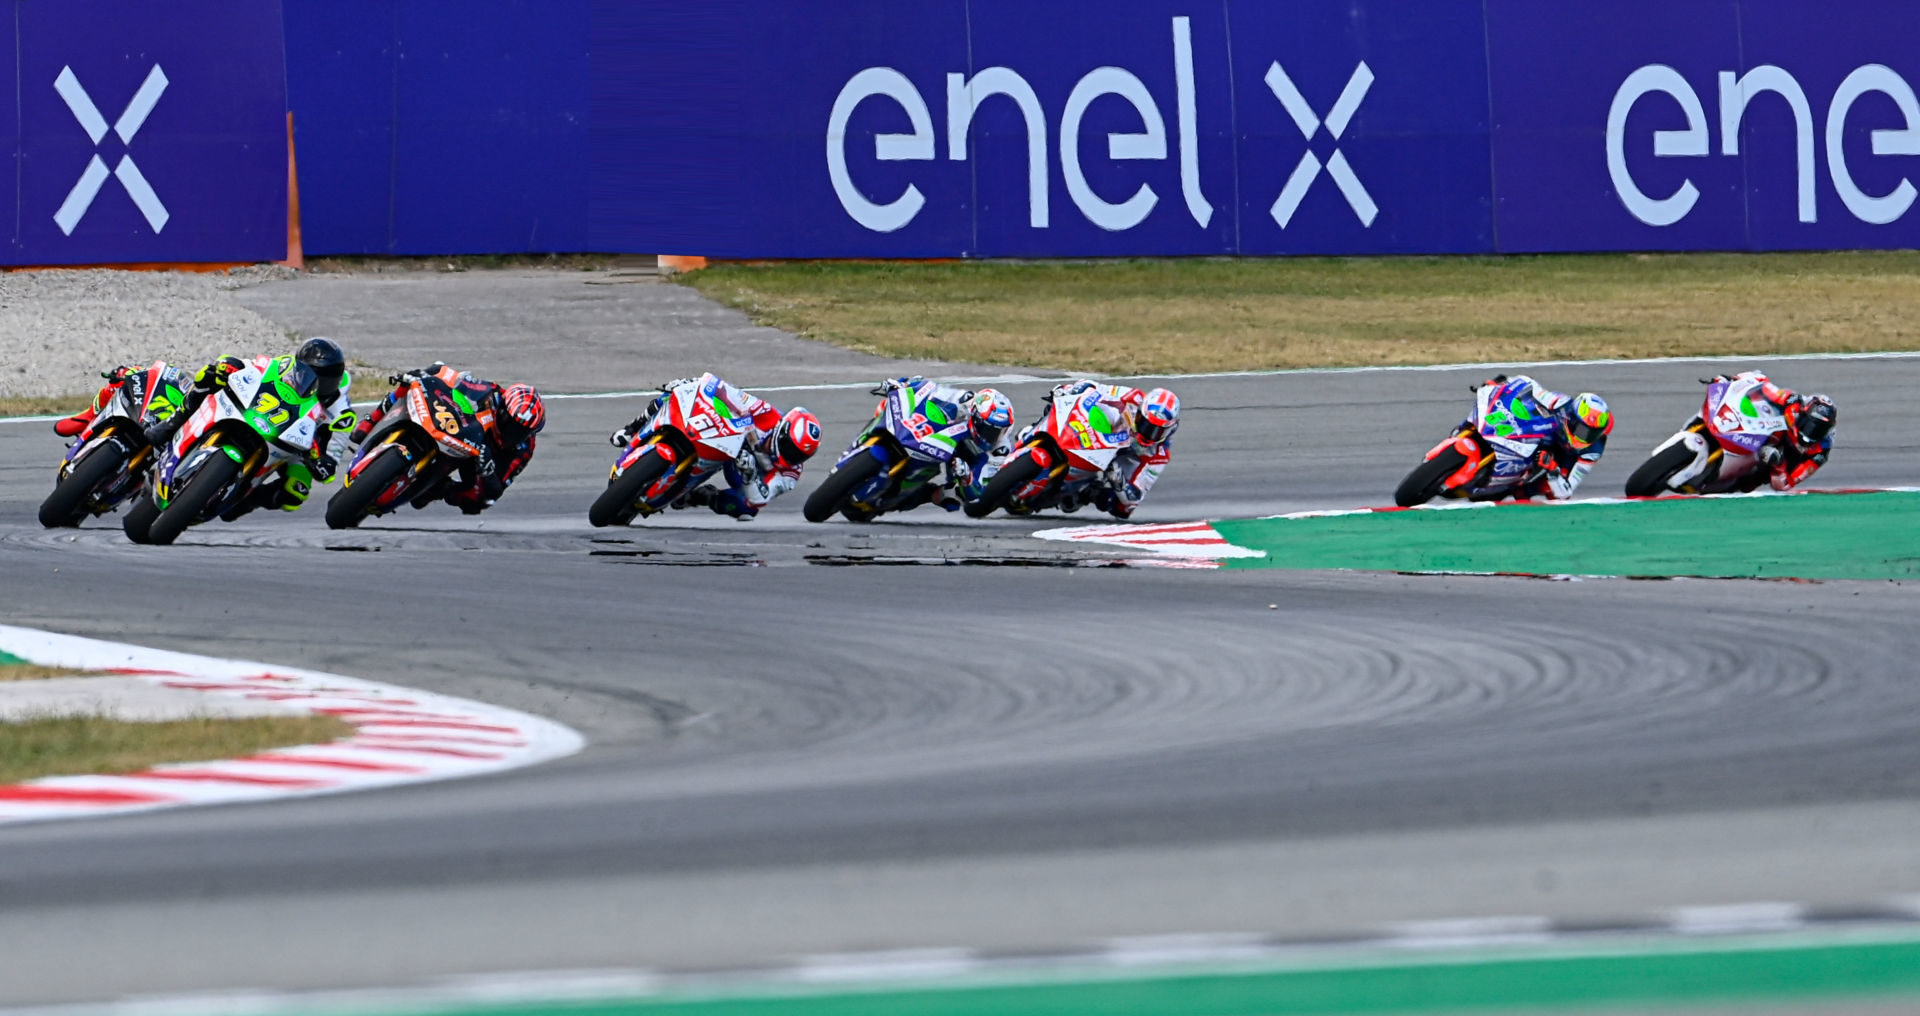 Enel is continuing as the title sponsor of the FIM MotoE World Cup. Photo courtesy Dorna.